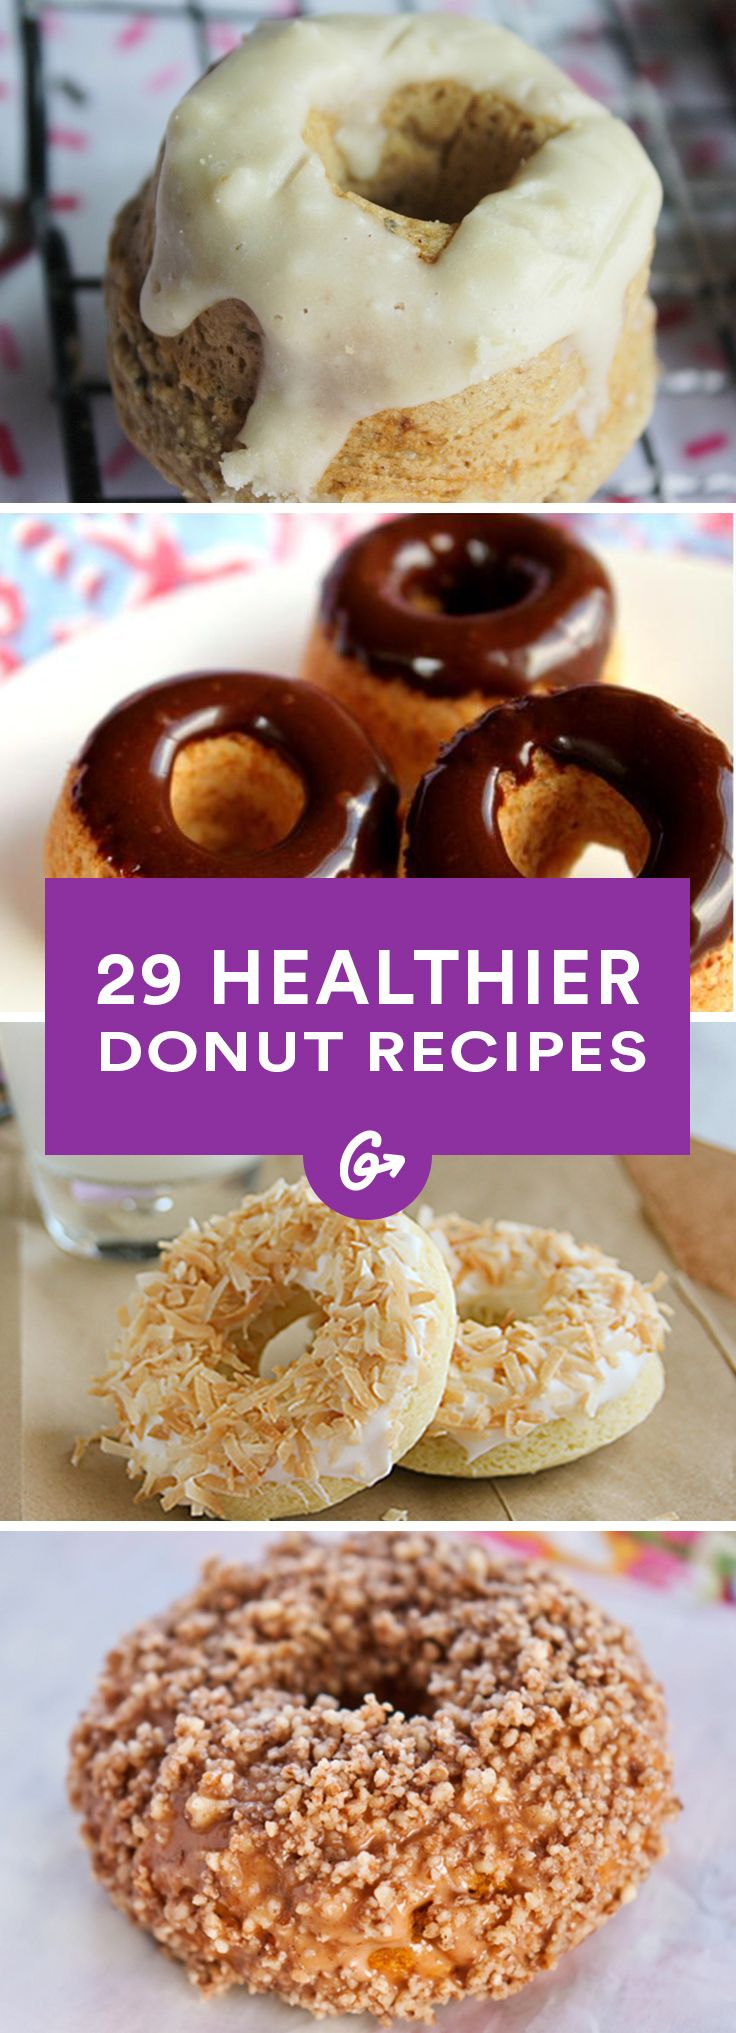 Who doesn't love a good doughnut? #healthy #doughnuts #recipes http://greatist.com/health/healthier-donut-recipes